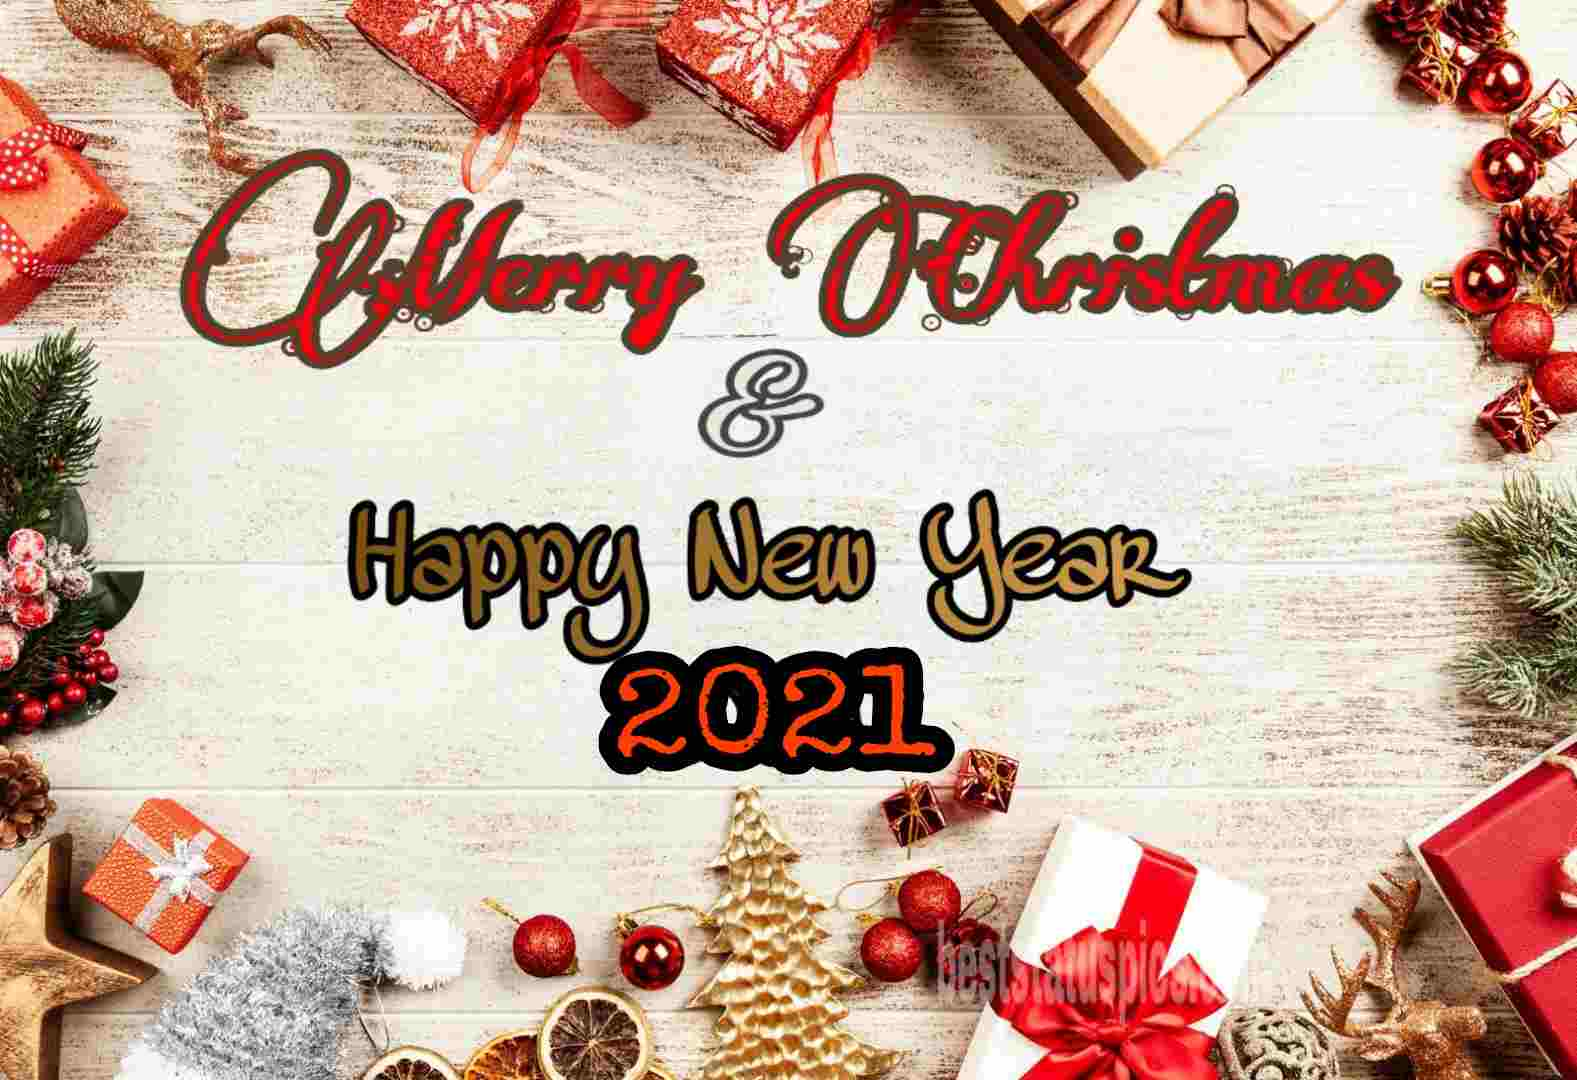 2021 Happy Merry Christmas And Happy New Year Wallpaper Lake Up In Mountain Merry Christmas And A Happy New Year 2021 Wallpapers Wallpaper Cave